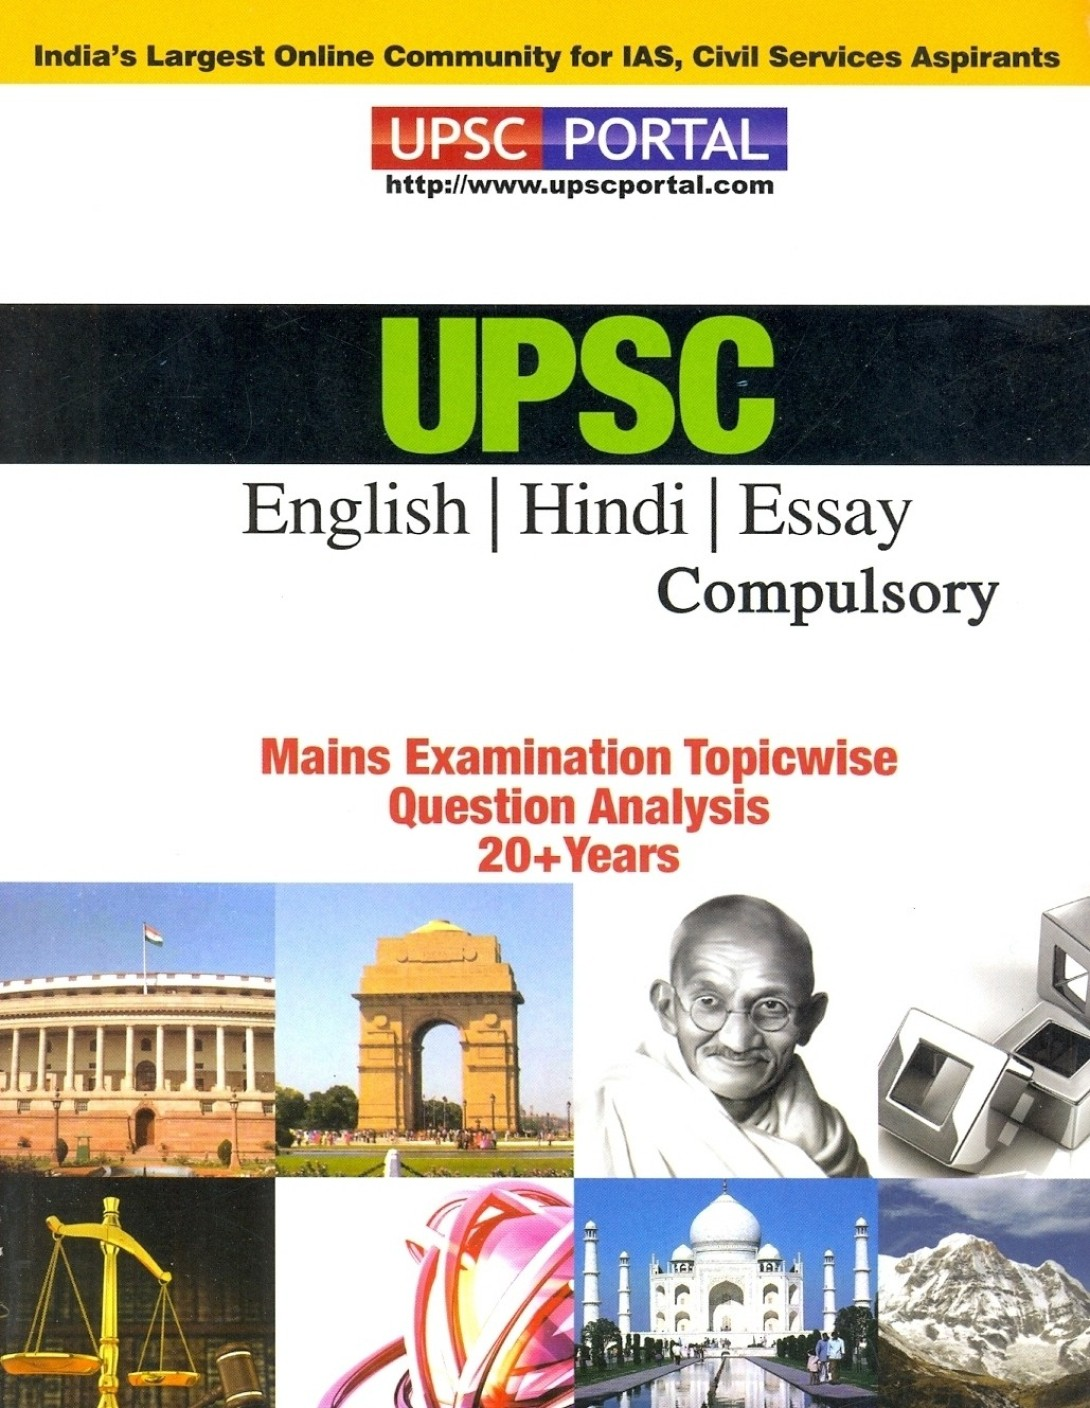 english hindi essay compulsory upsc mains examination pb st facebook